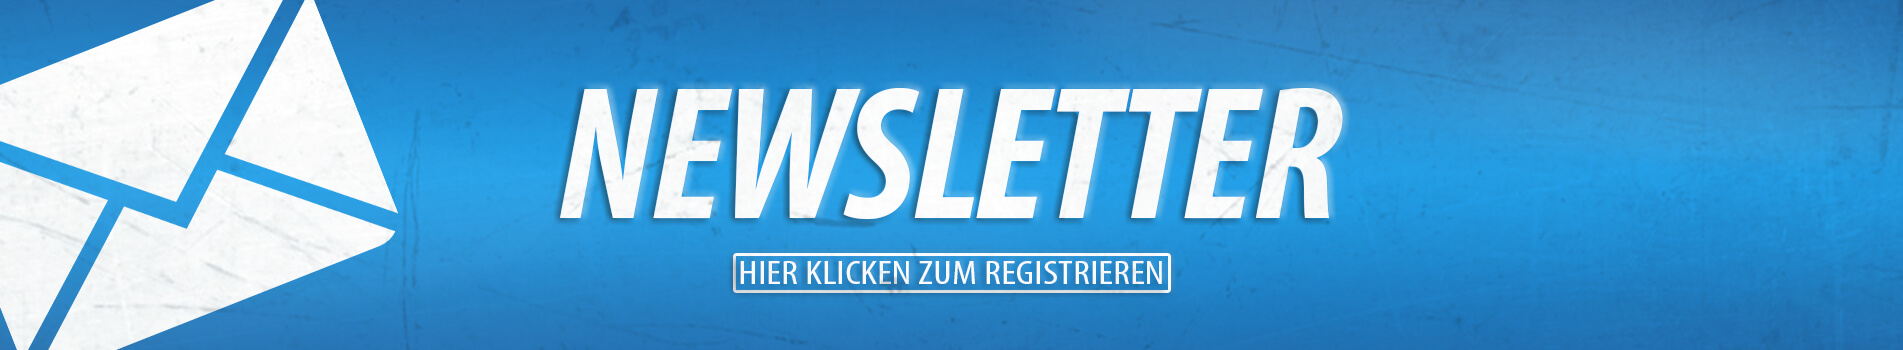 Hockeyshop Forster Newsletter